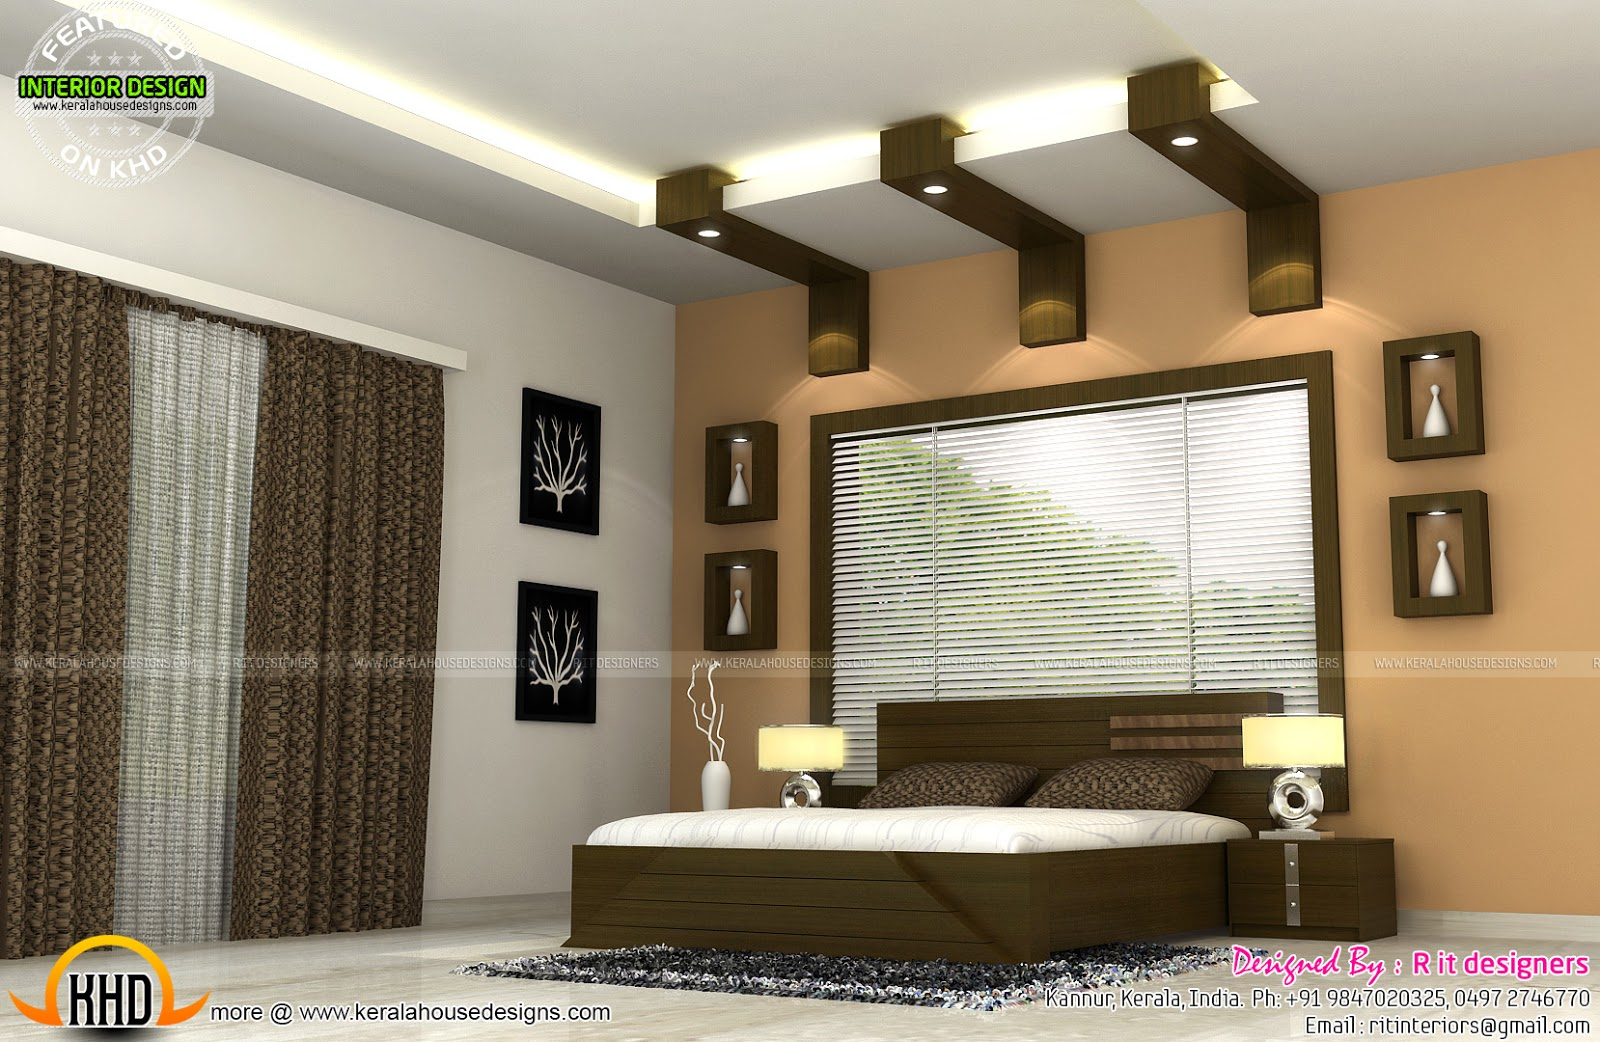 Interiors of bedrooms and kitchen kerala home design and Bedroom with kitchen design